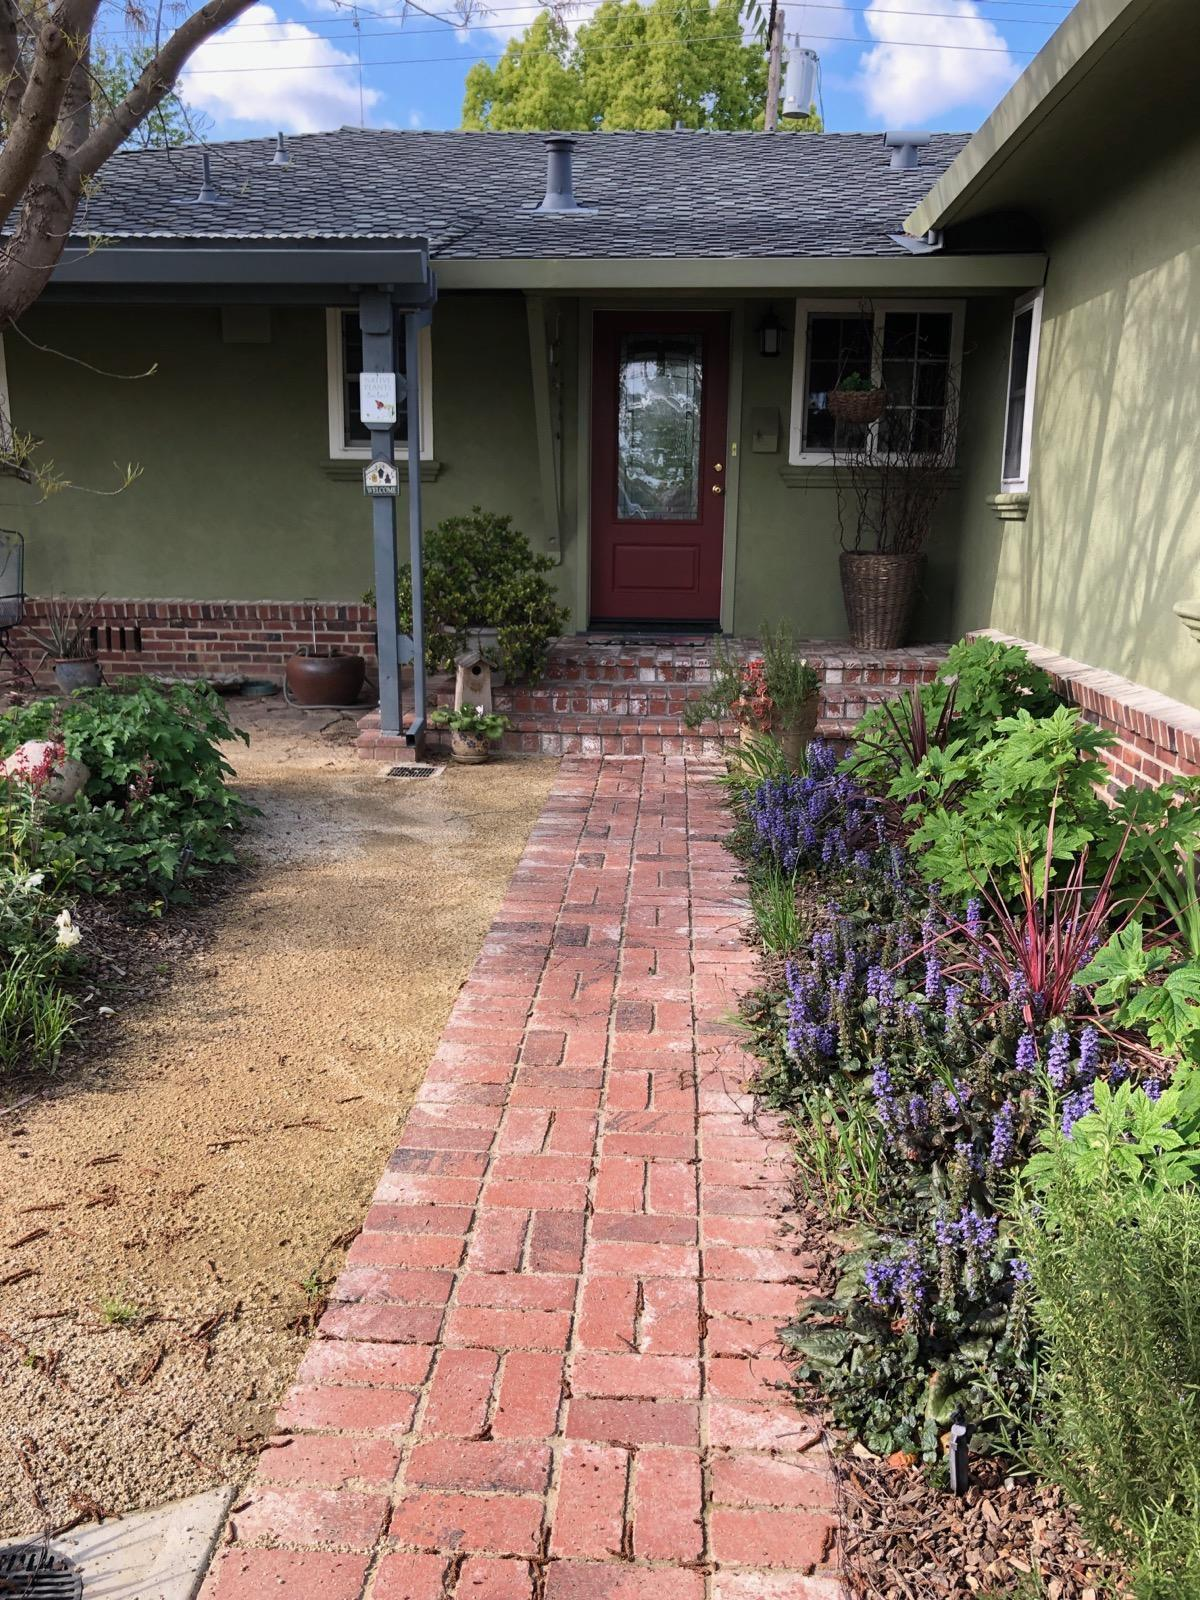 Lodi residents lead trend to replace lawns with native plants